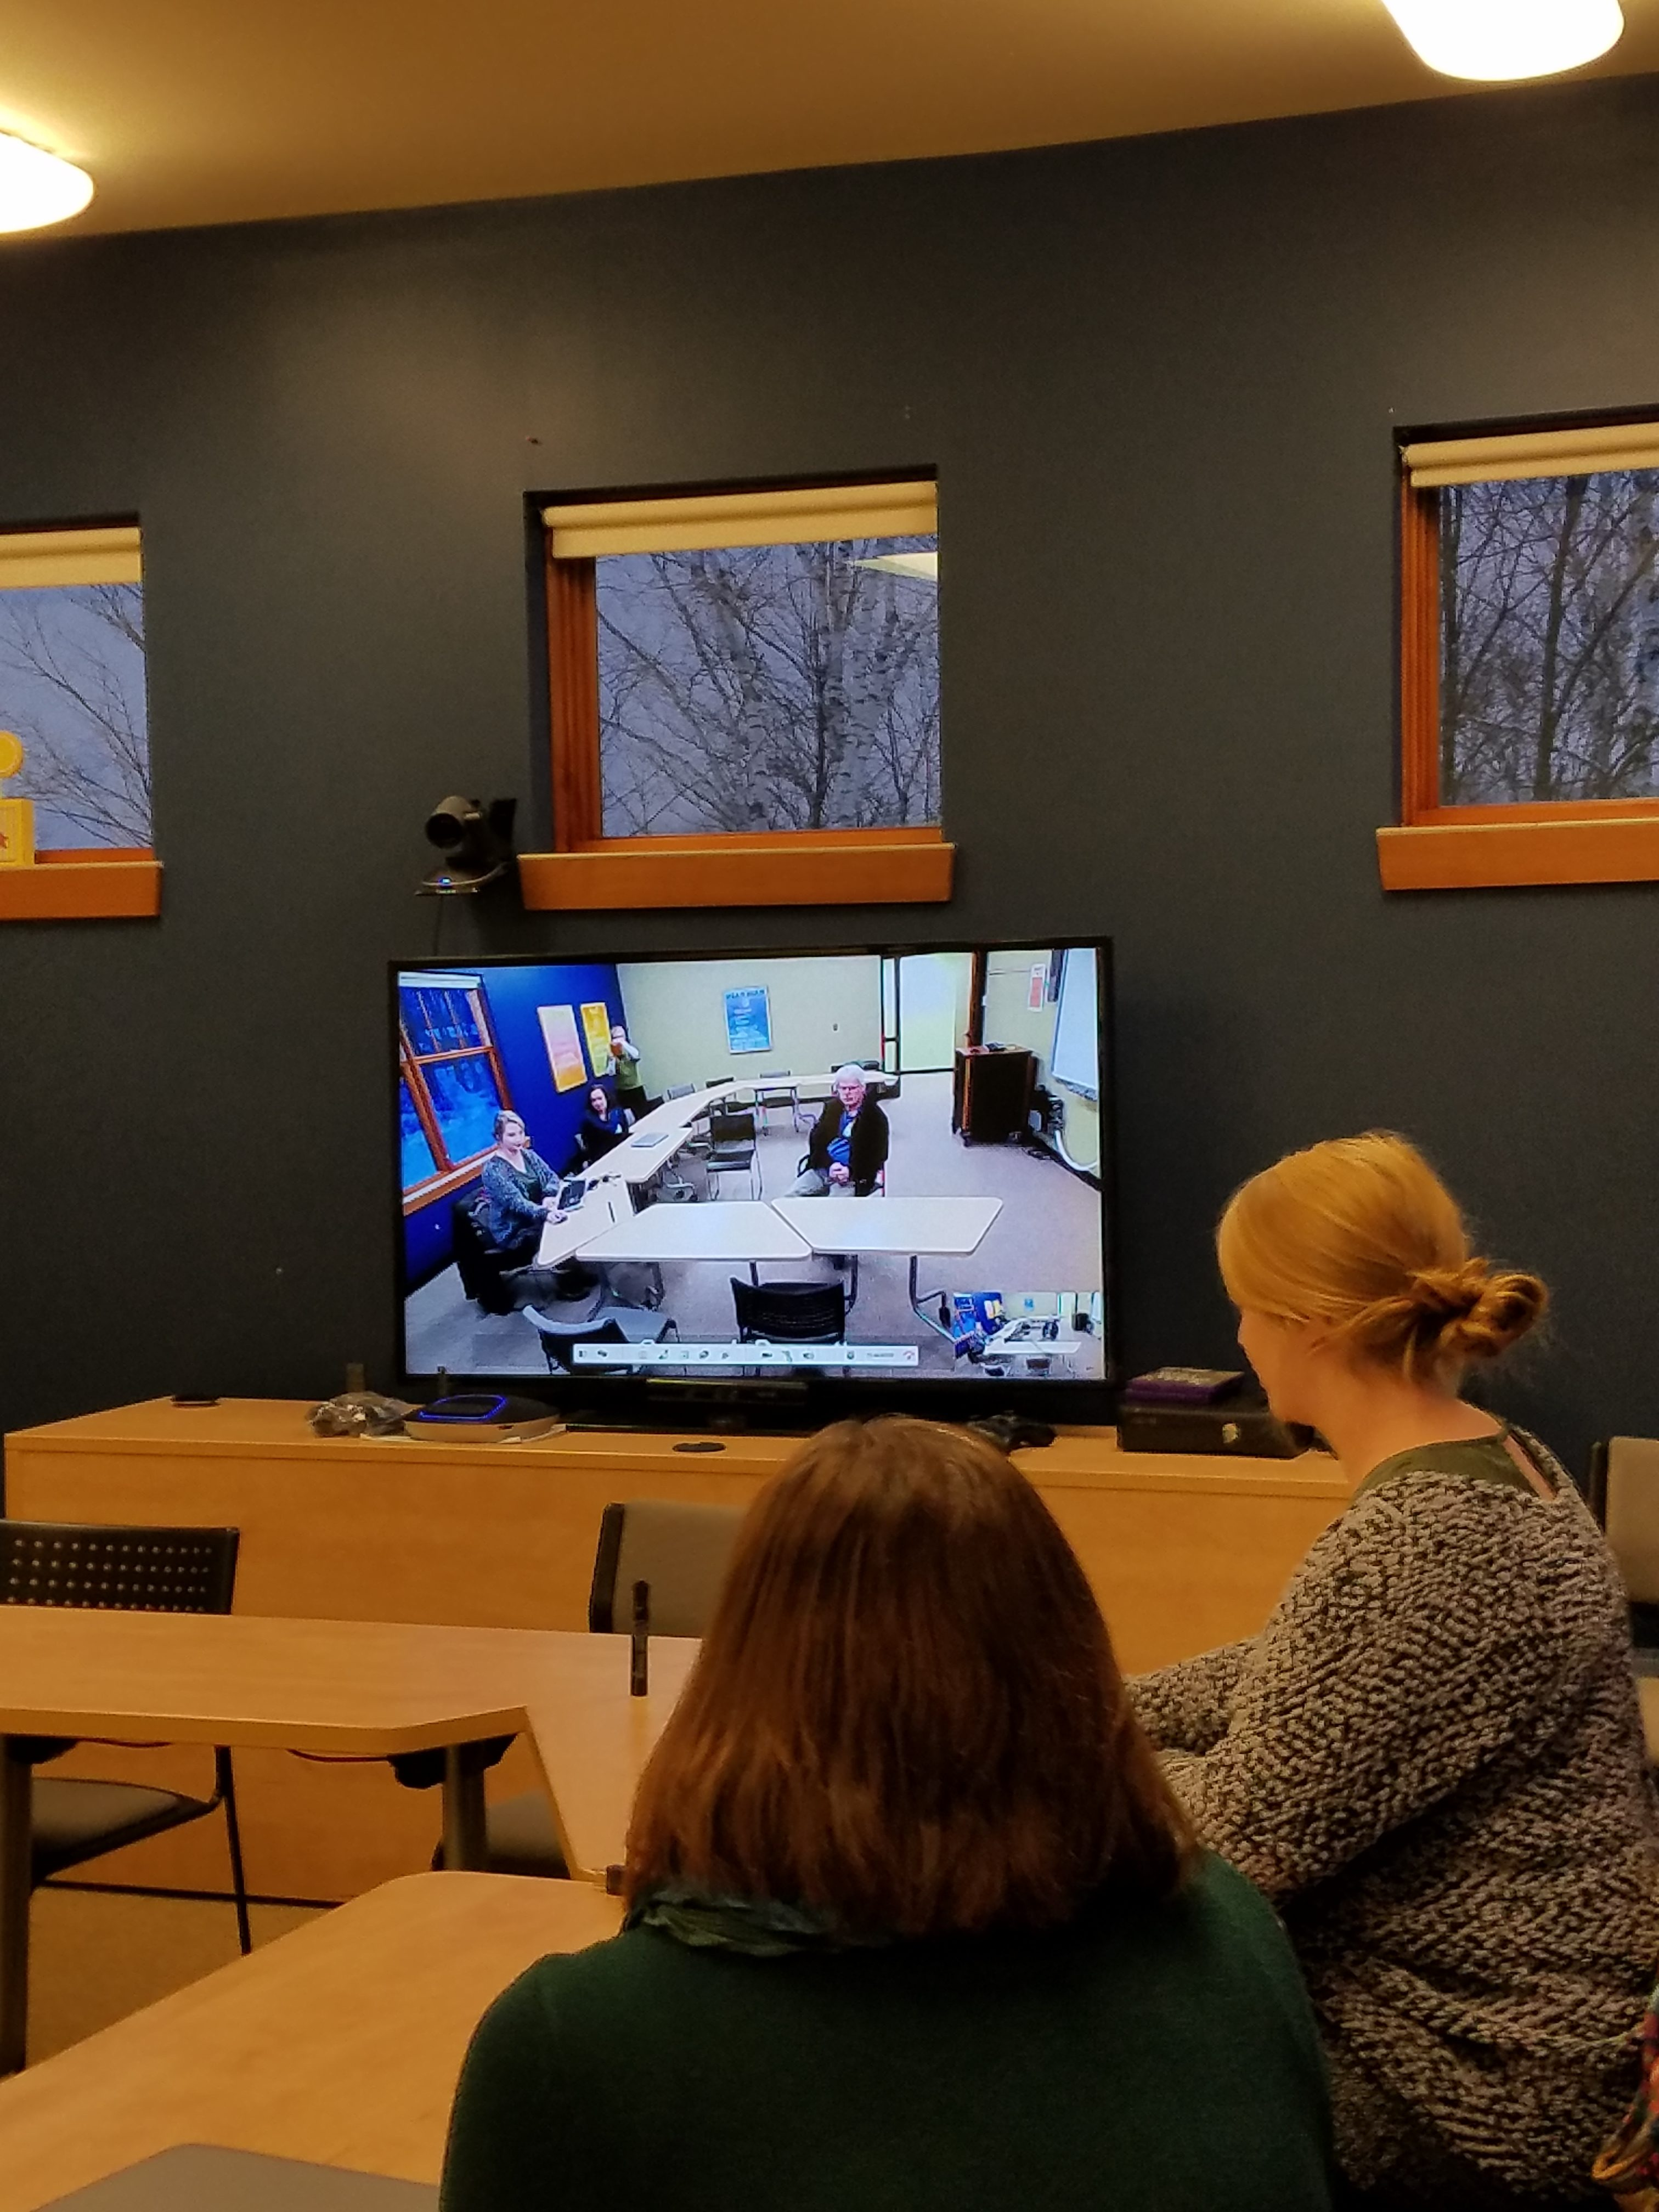 Conference room during a teleconference